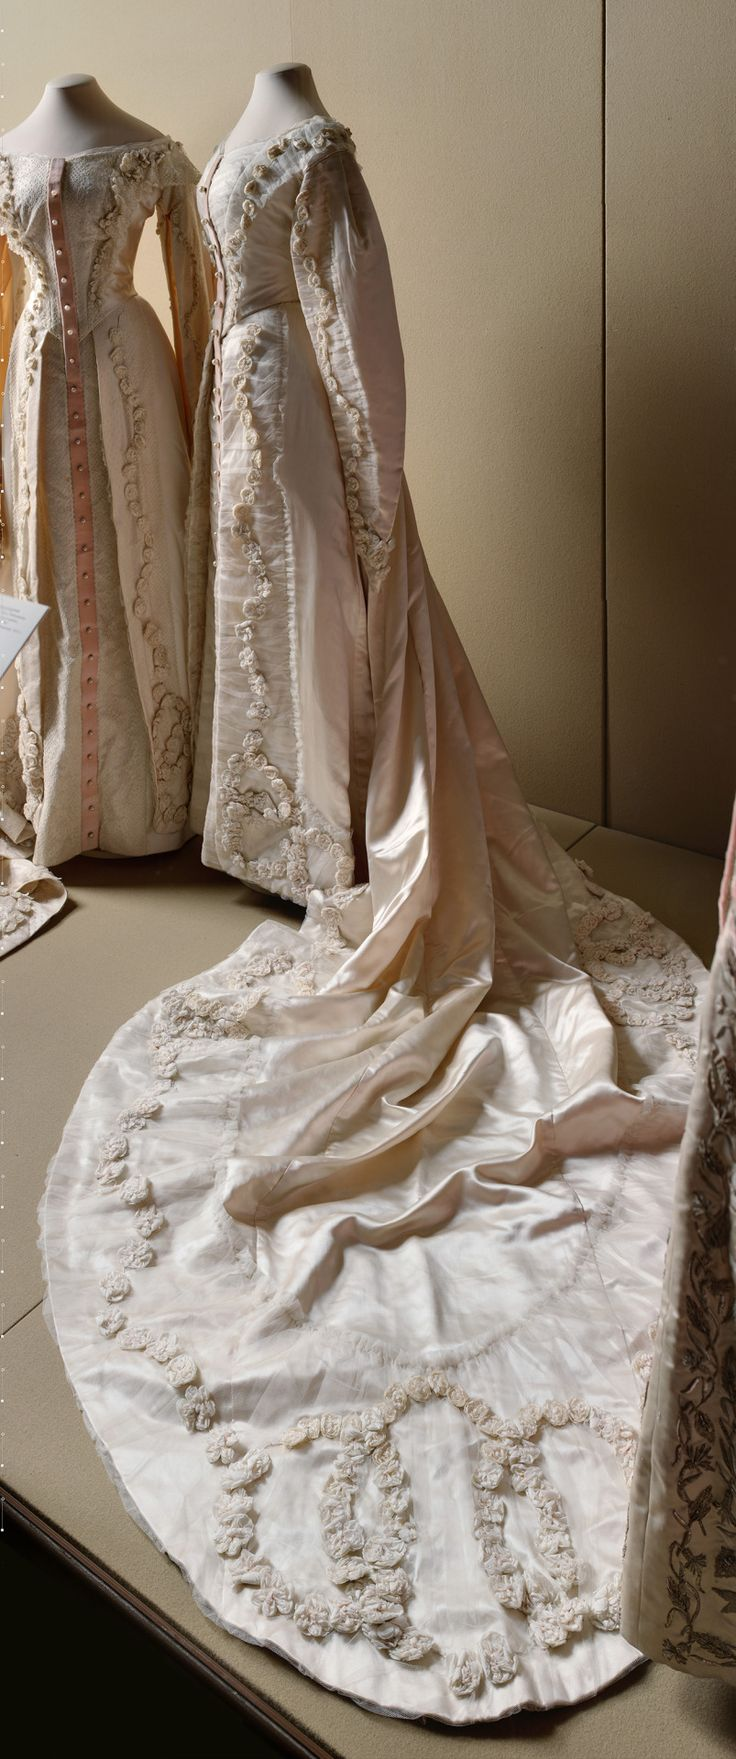 It's rather sad that these dresses stand side by side, like shells of the sisters who once wore them.